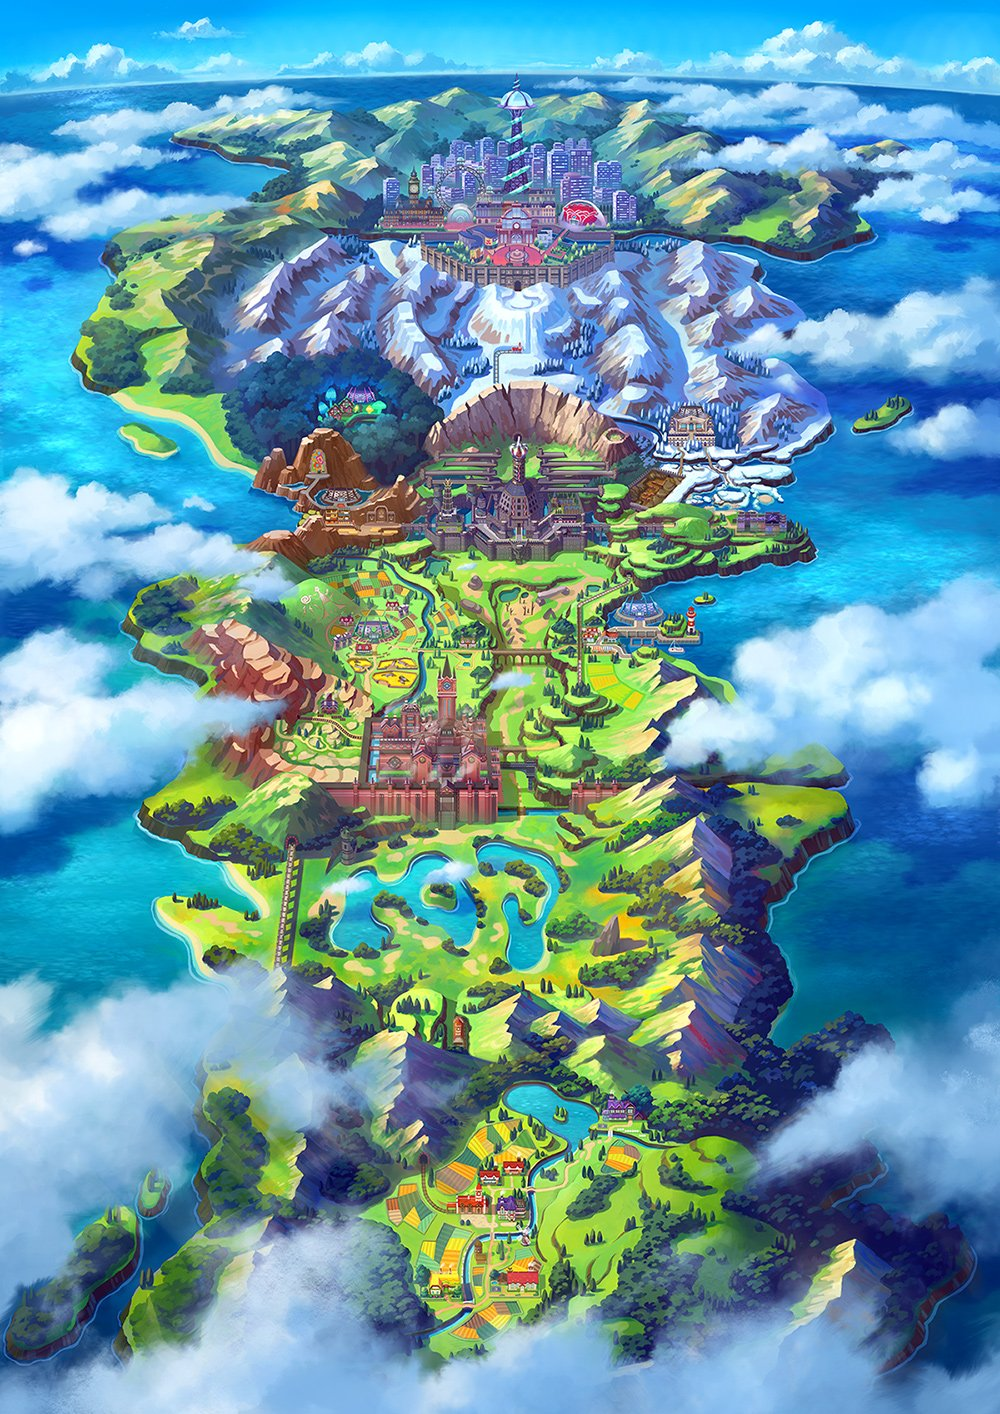 A full map of the Galar region